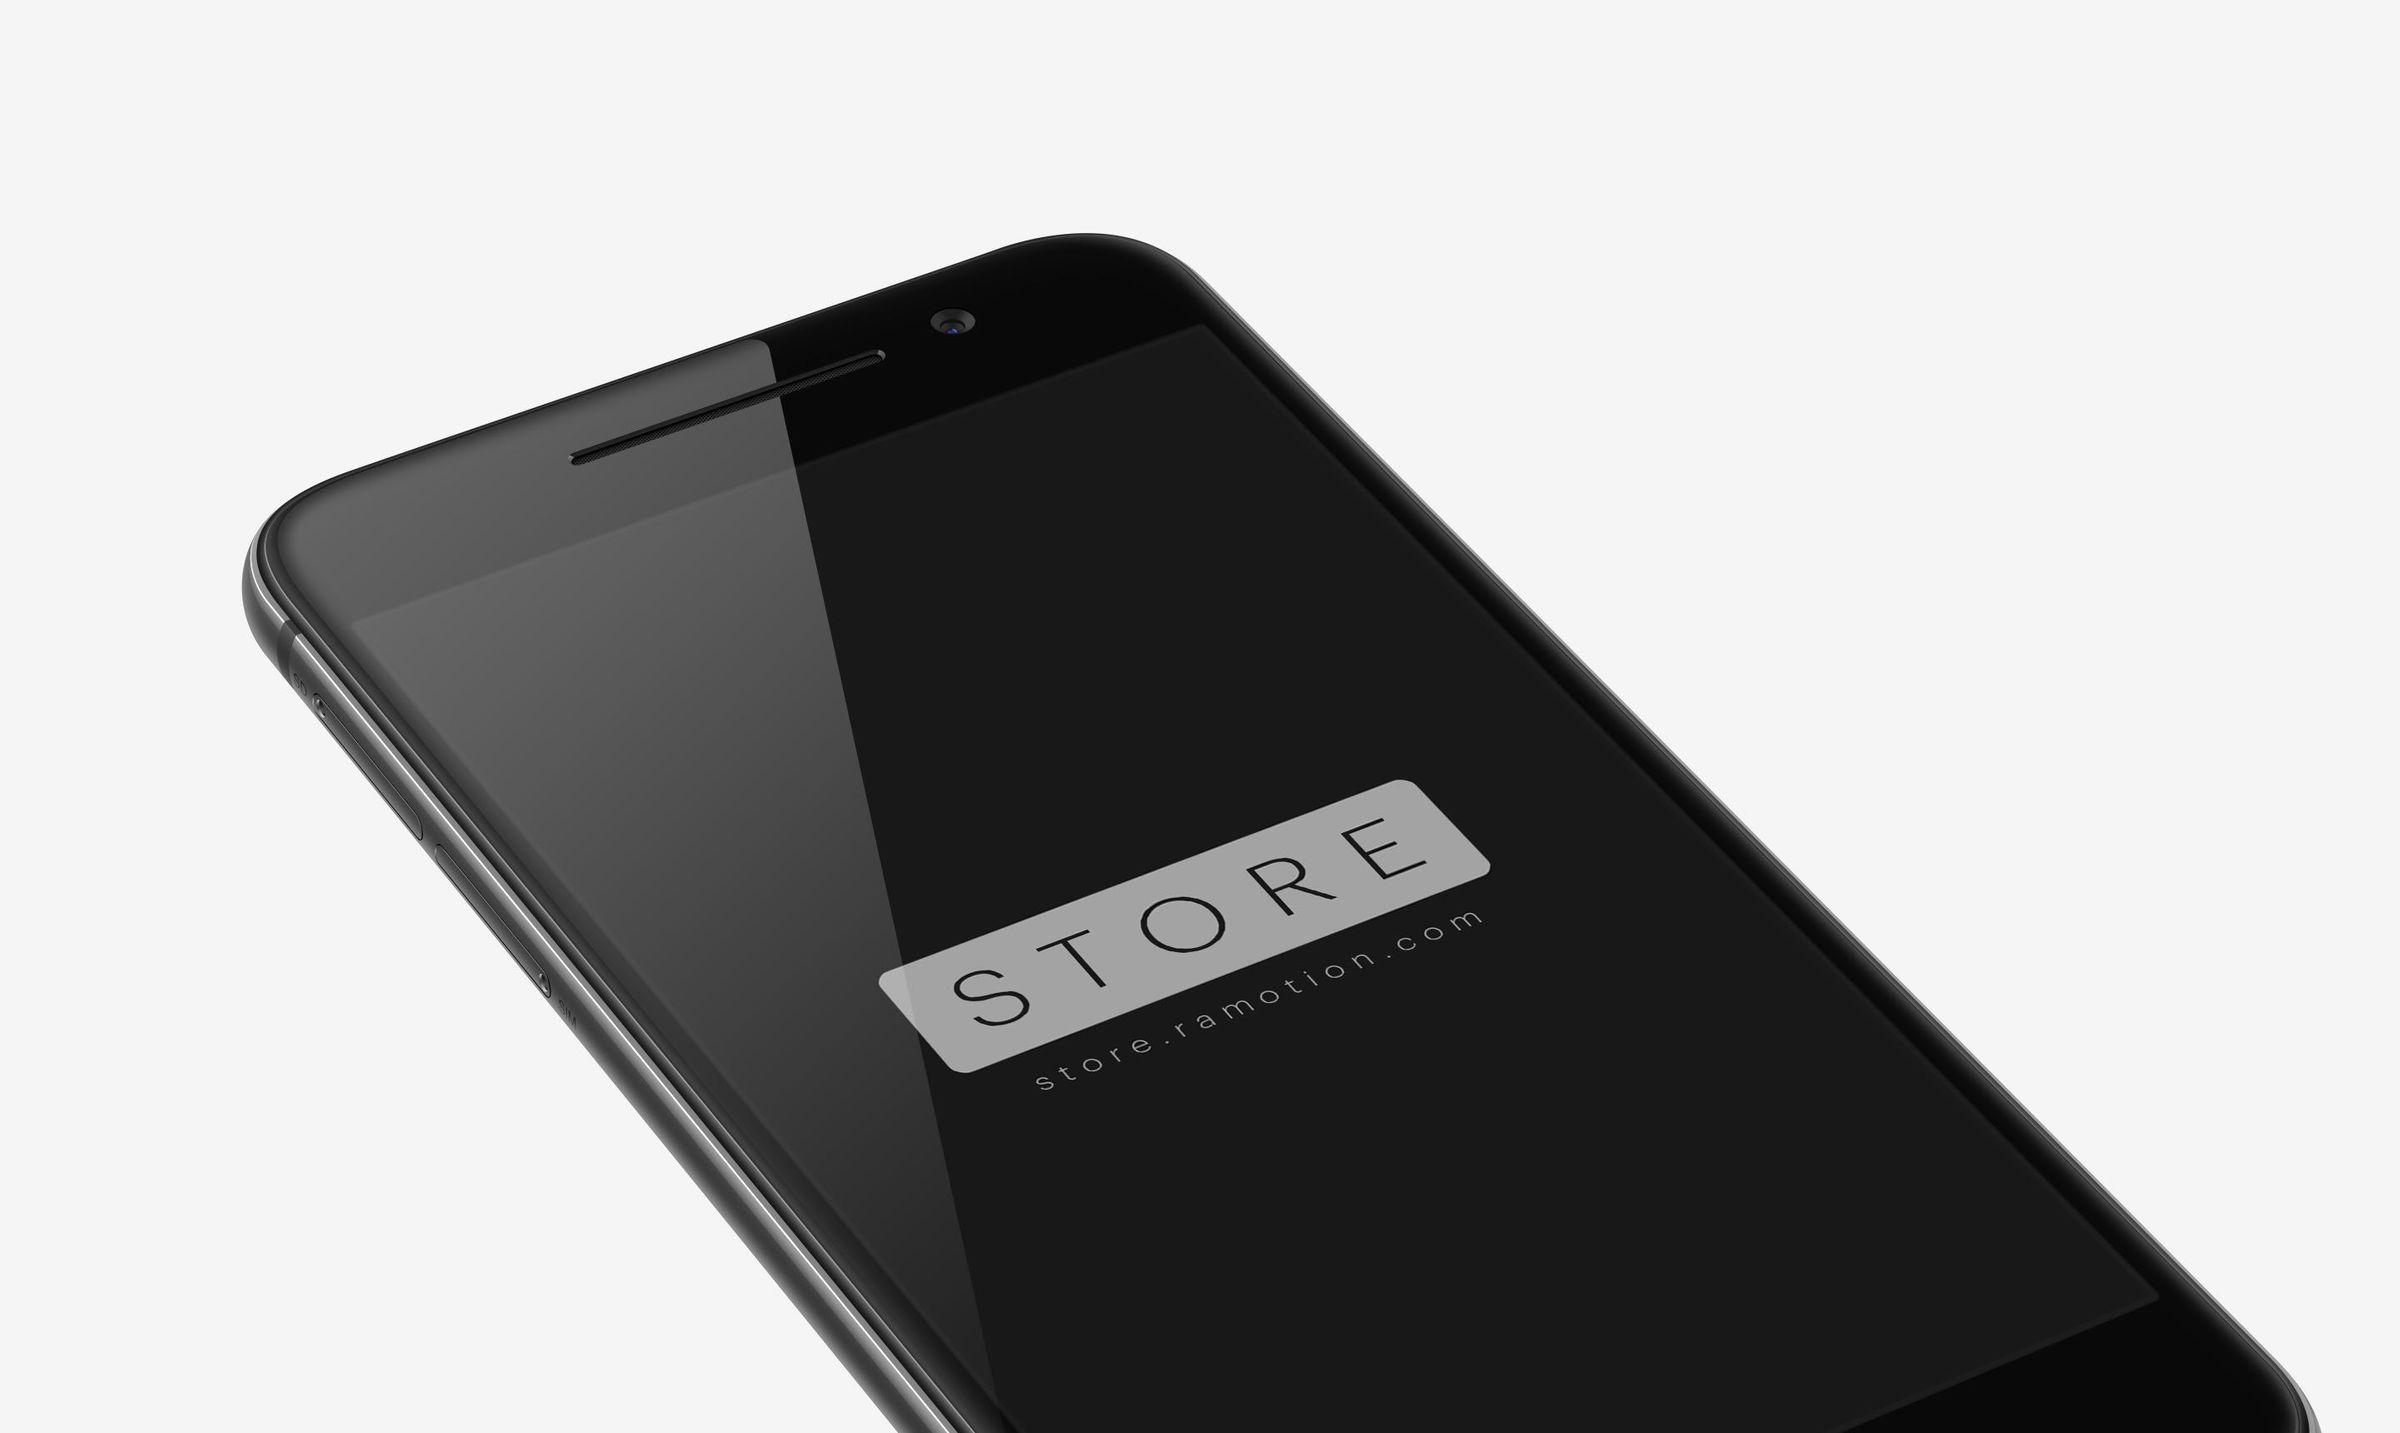 htc one perspective mockup